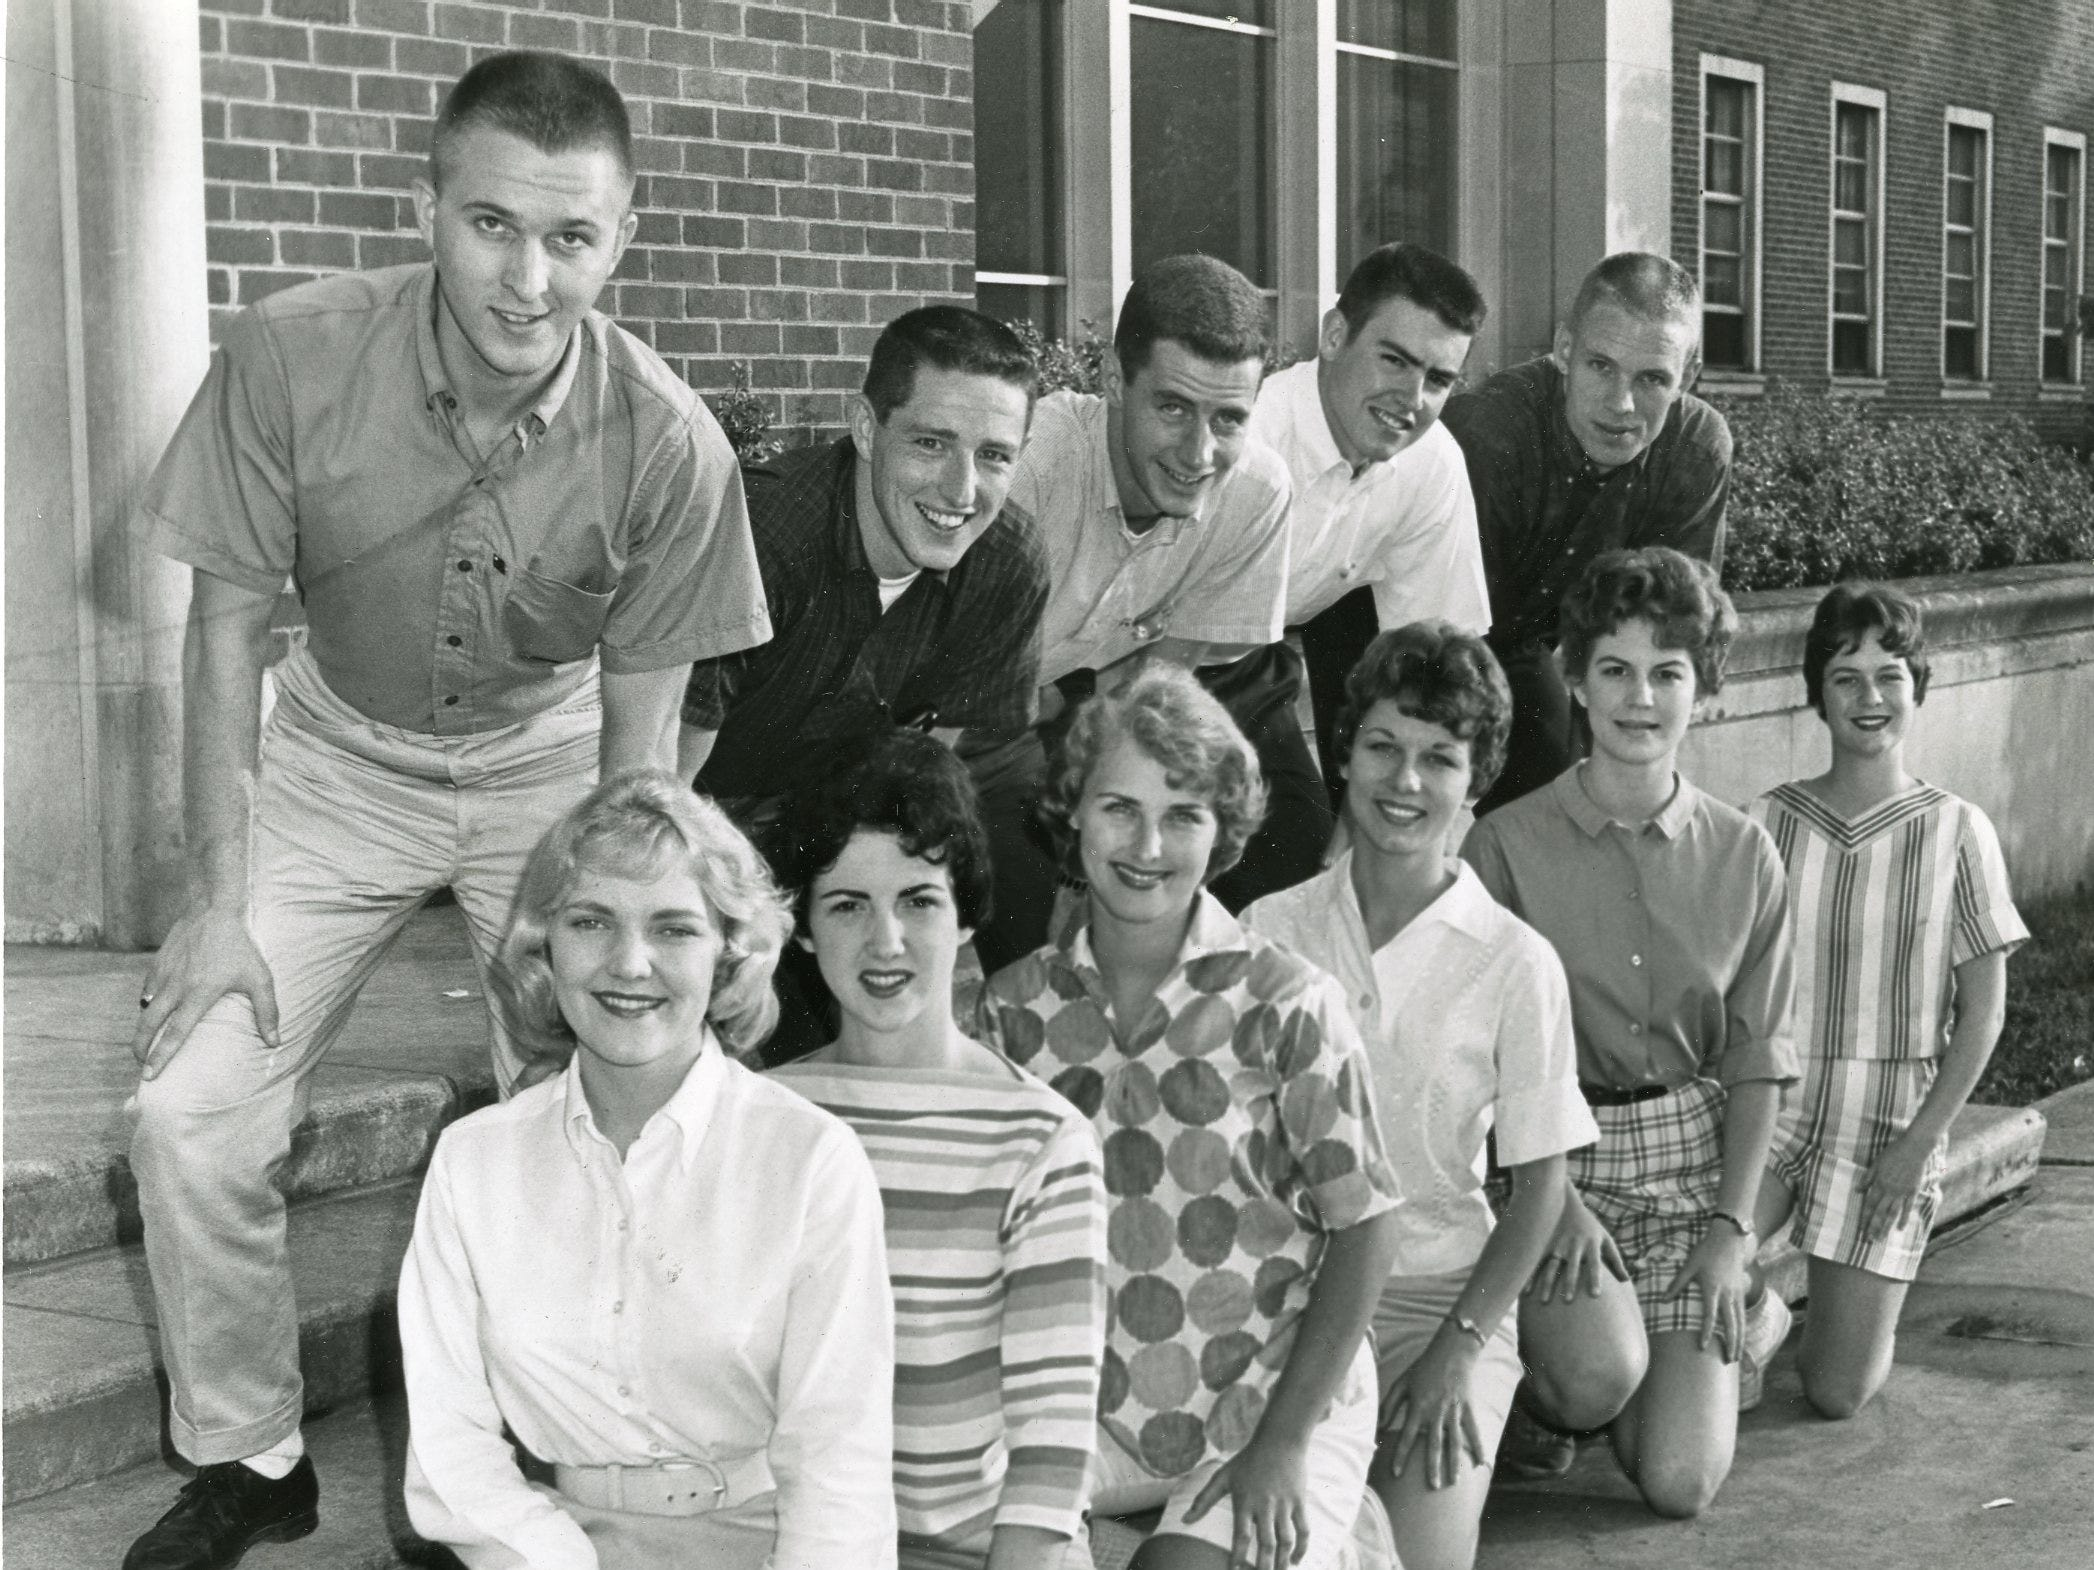 Cheerleaders at the University of Tennessee in 1961 were Sue Novotny, Martha Dempster, Wallene Threadgill, Dola Faye Terry, Janet Stanford, Ann Dixon; Ray Thach, John Pesterfield, Danny Nolan, Tommy Leek and Frank Bowyer.